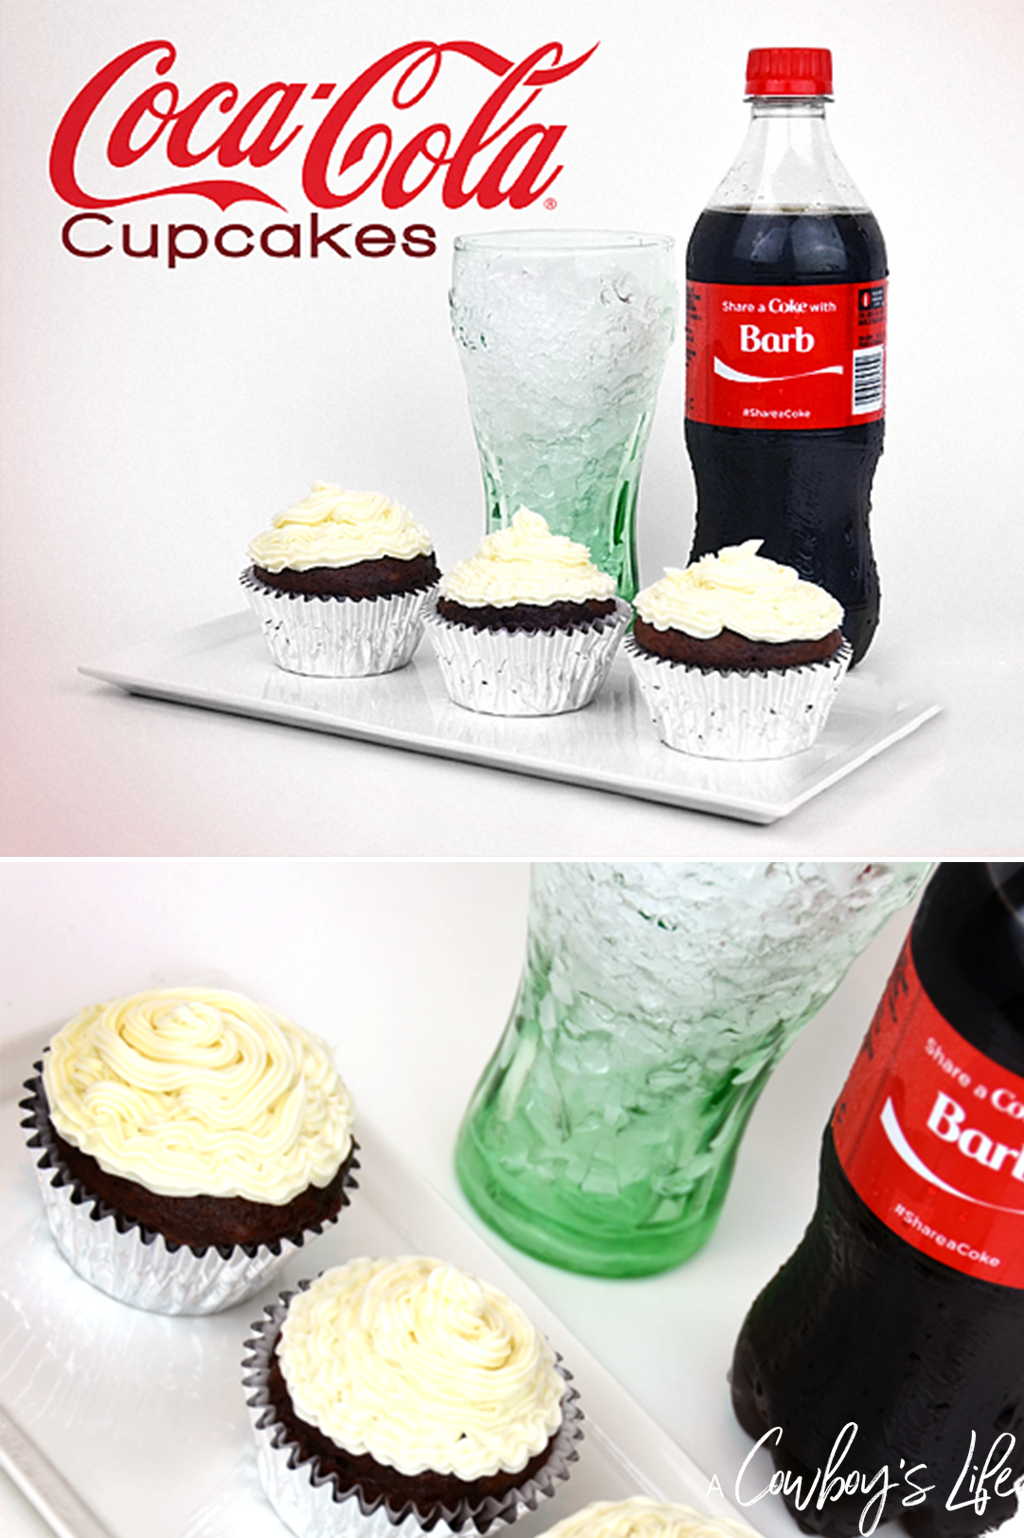 How to make Coca-Cola cupcakes